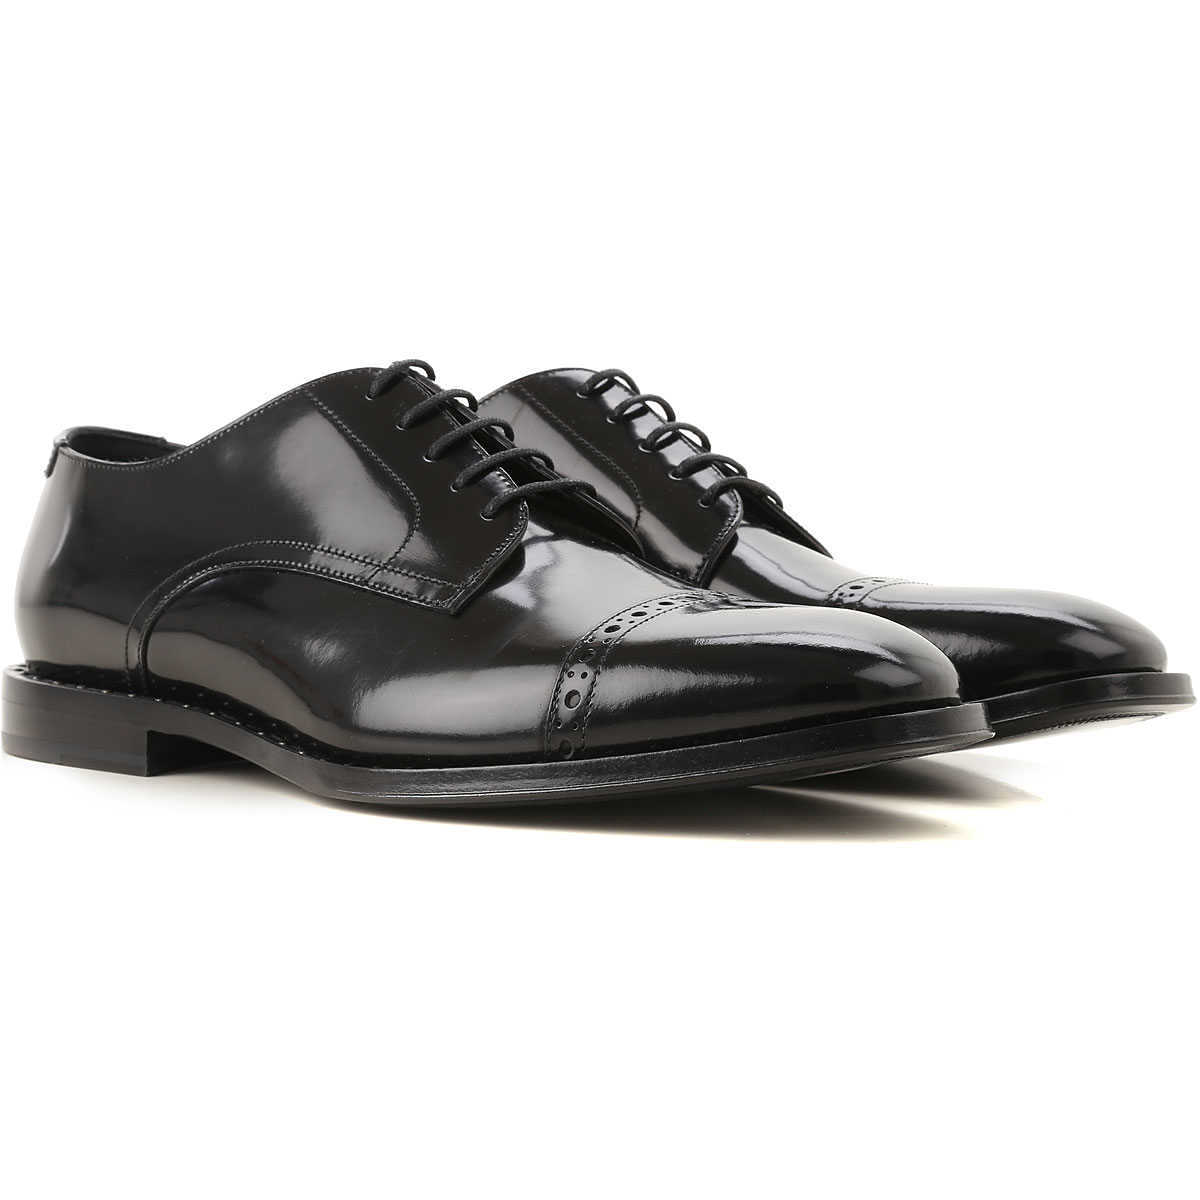 Jimmy Choo Lace Up Shoes for Men Oxfords Derbies and Brogues On Sale in Outlet DK - GOOFASH - Mens FORMAL SHOES